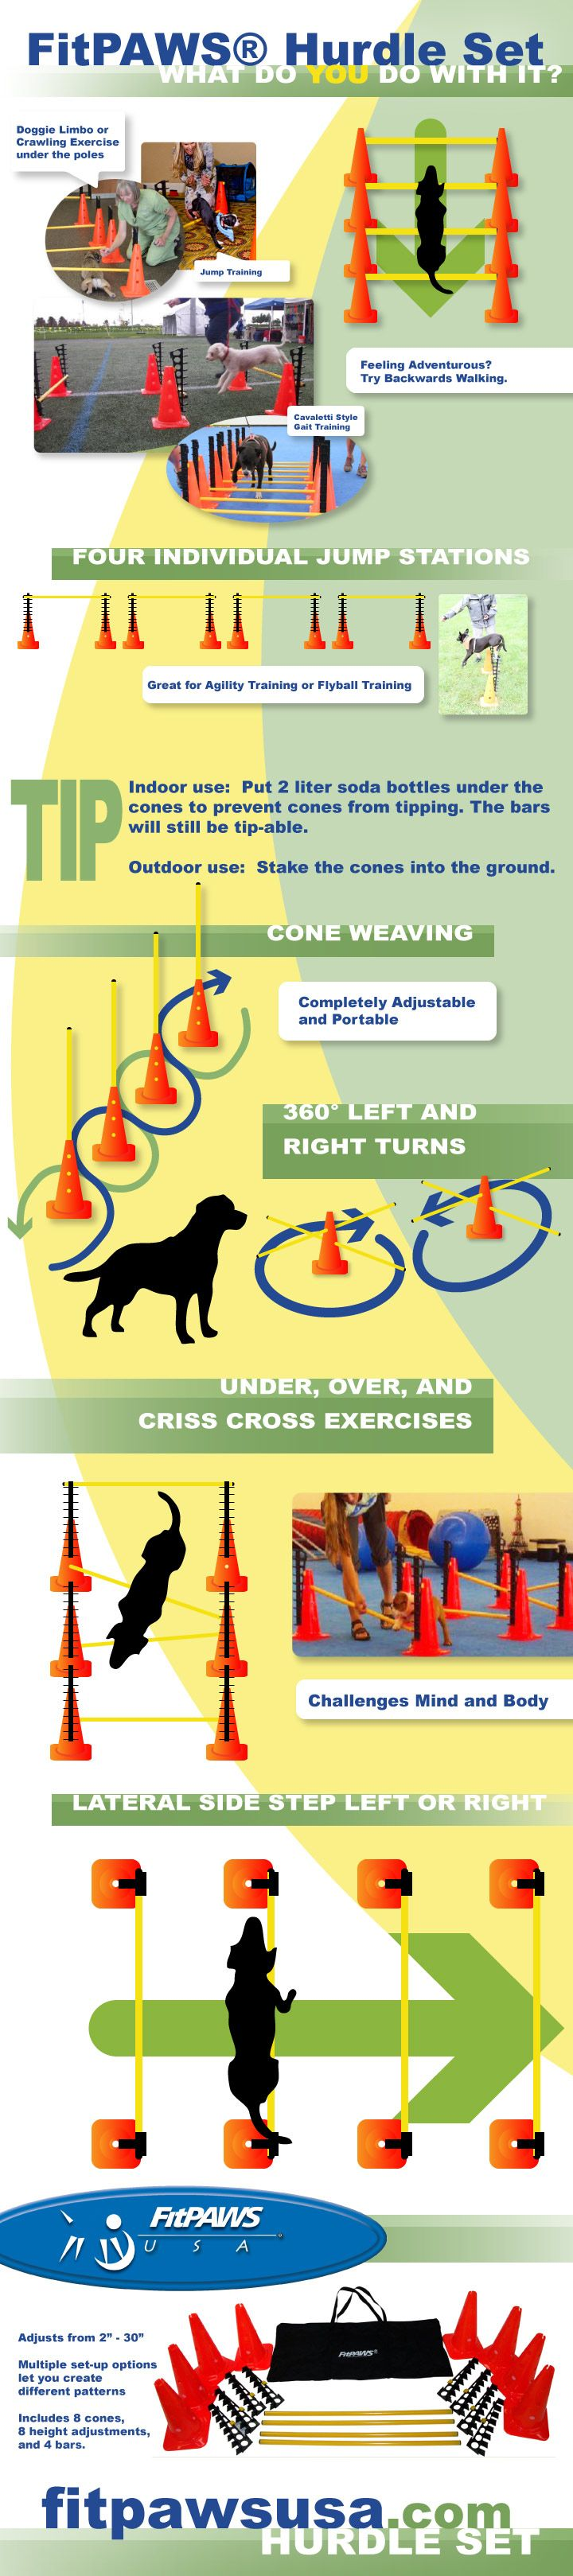 9 ways to use the FitPAWS® Hurdle Set! - #infographic #dogs #fitness - fitpawsusa.com -